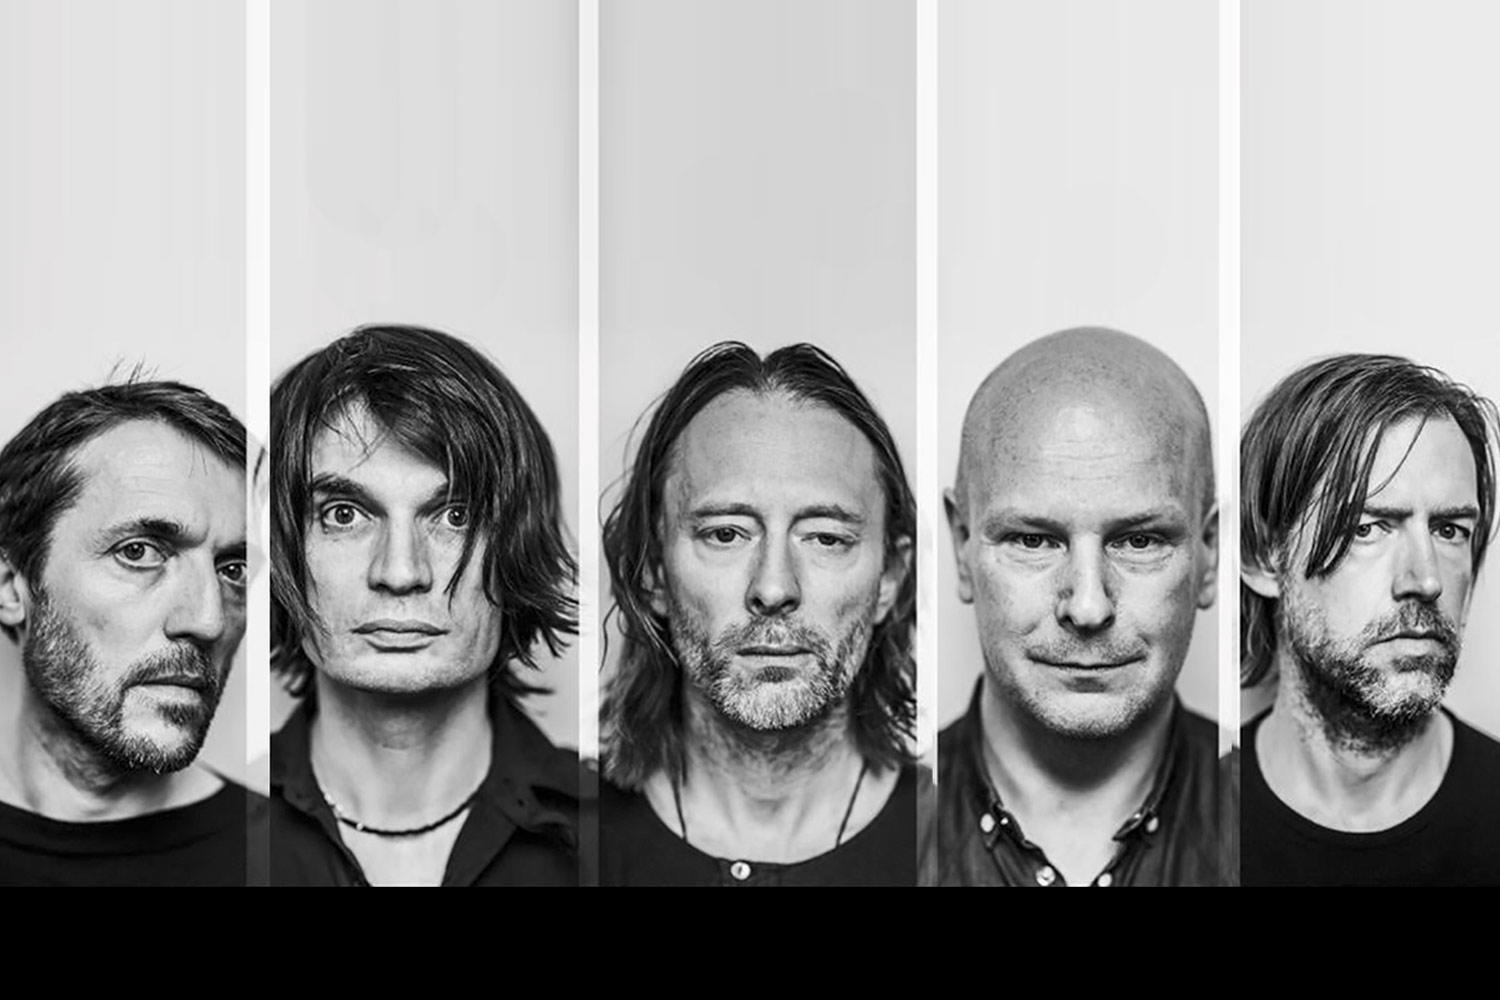 Radiohead to release stolen 'OK Computer' demos as 'MINIDISCS [HACKED]'